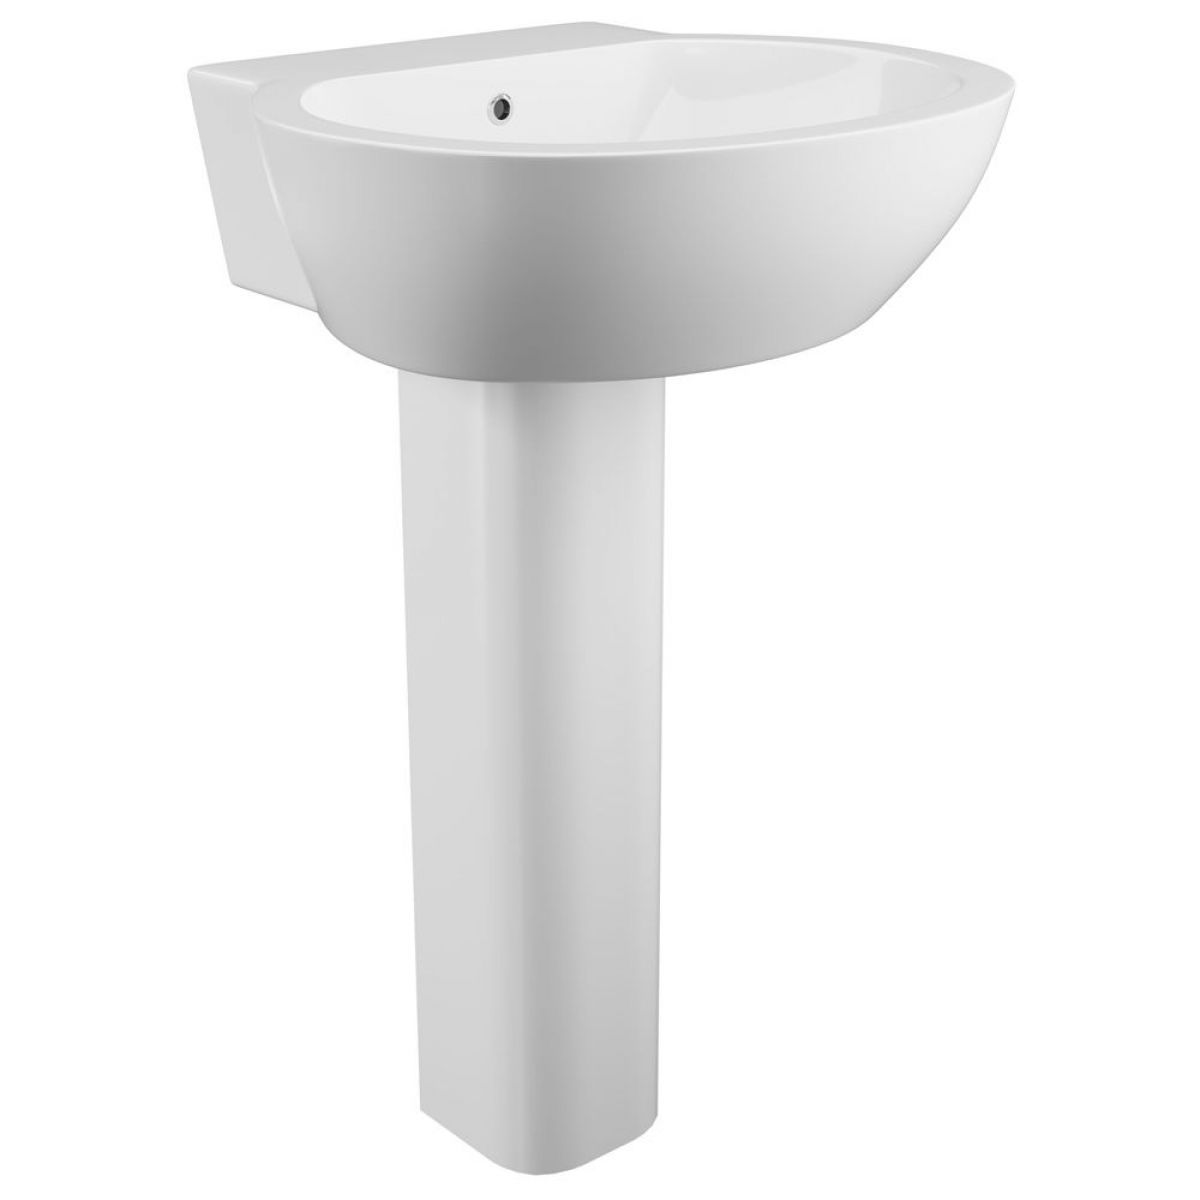 Cassellie Wharfe 1 Tap Hole Basin with Full Pedestal